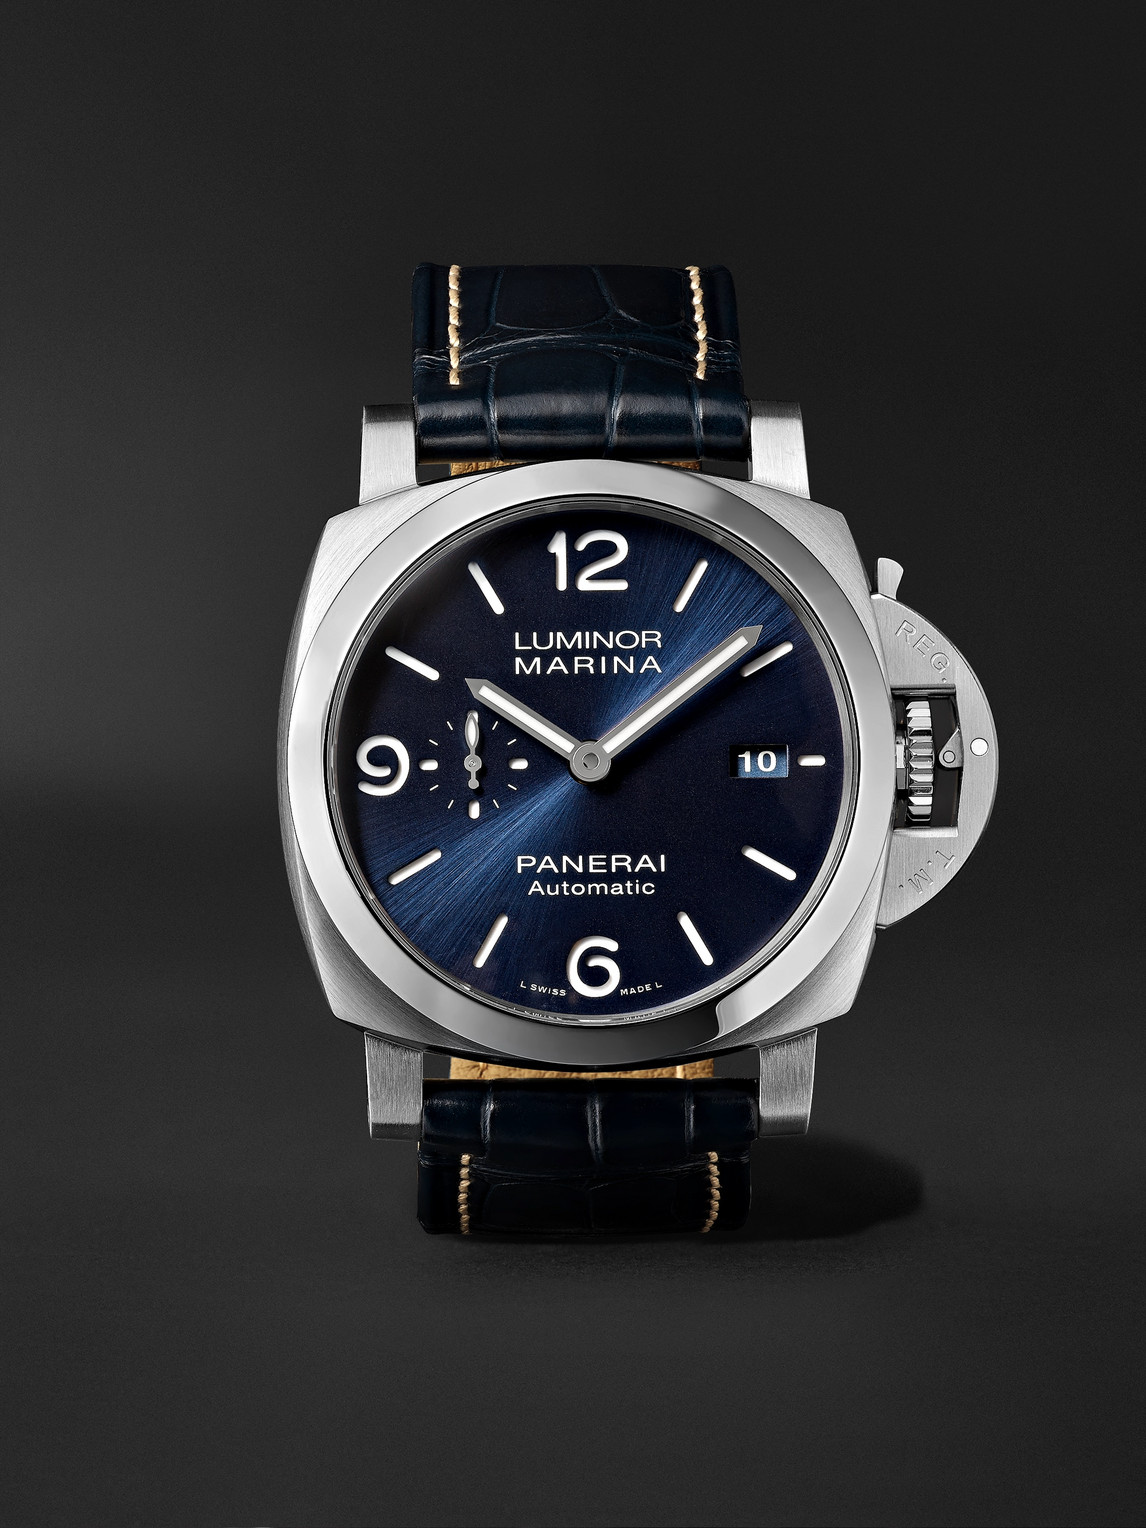 Panerai Luminor Marina Automatic 44mm Stainless Steel And Alligator Watch, Ref. No. Pam01313 In Blue